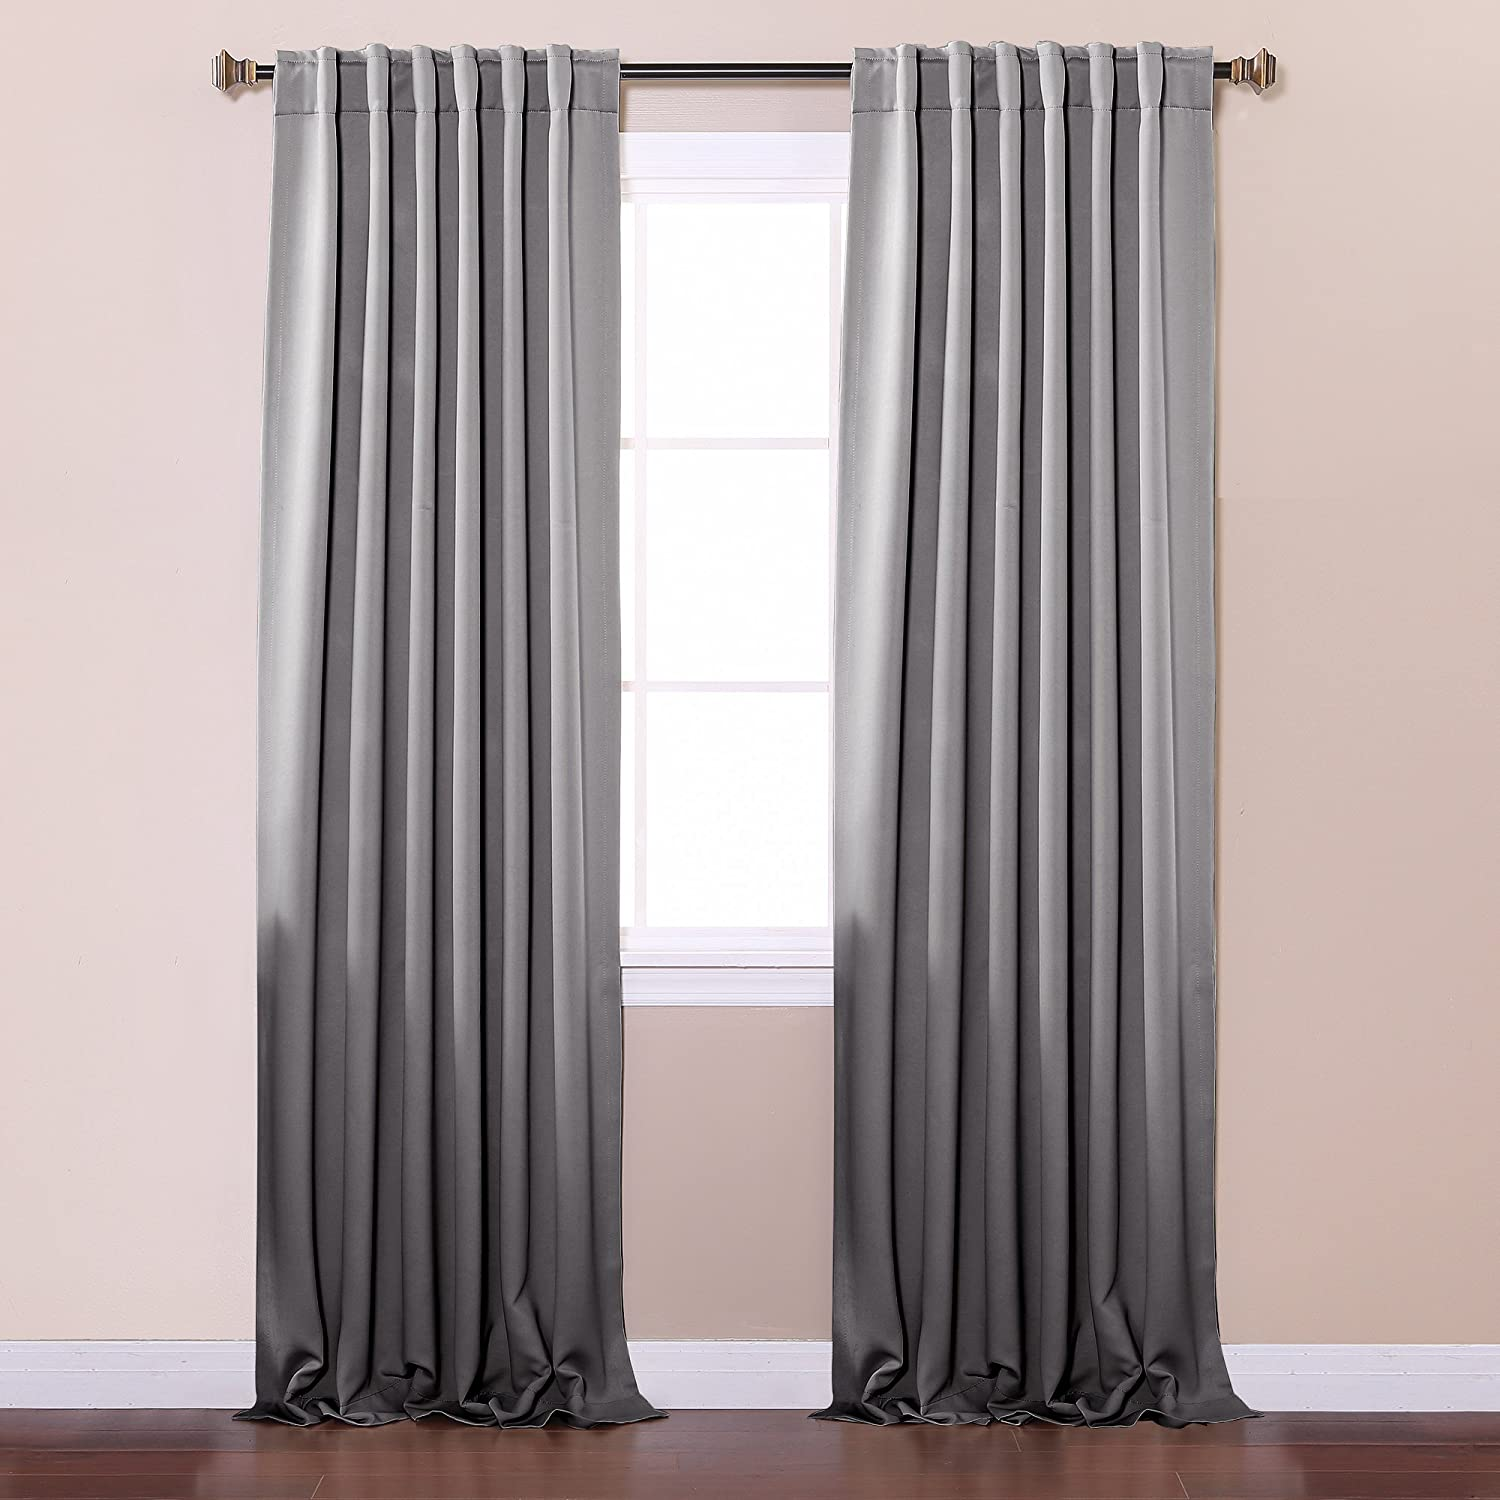 Teal and grey curtain panels - Amazon Com Best Home Fashion Thermal Insulated Blackout Curtains Back Tab Rod Pocket Grey 52 W X 84 L Set Of 2 Panels Home Kitchen